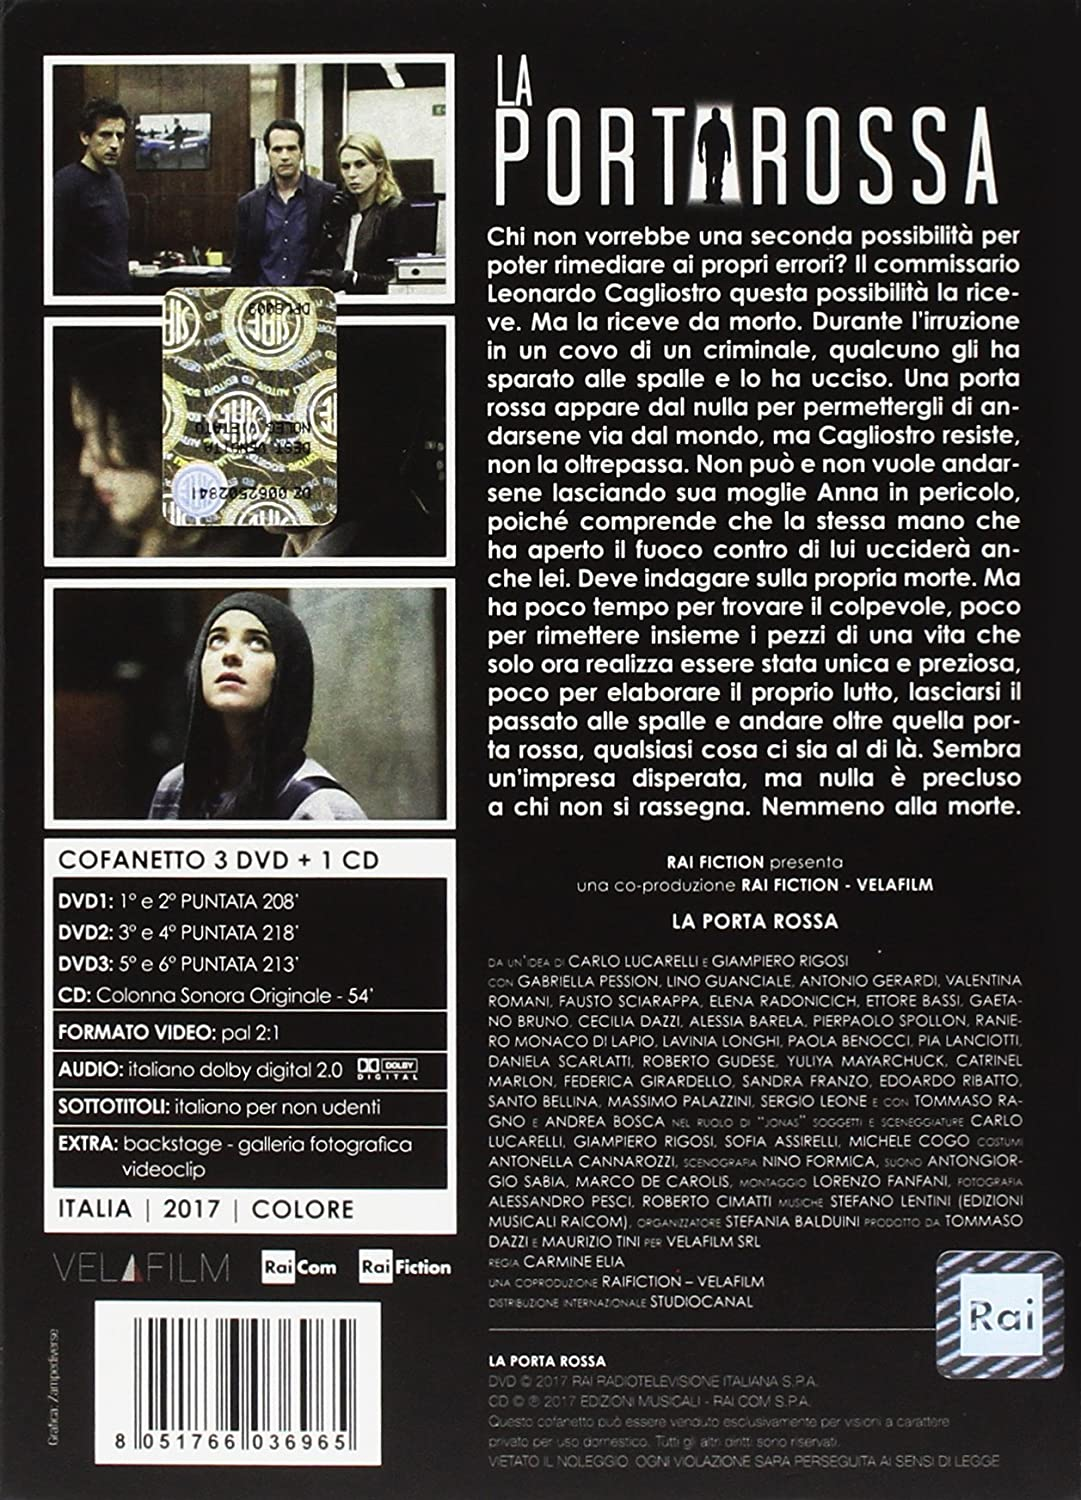 La Porta Rossa 3 Dvdcd Box Set Dvd Italian Import Amazon